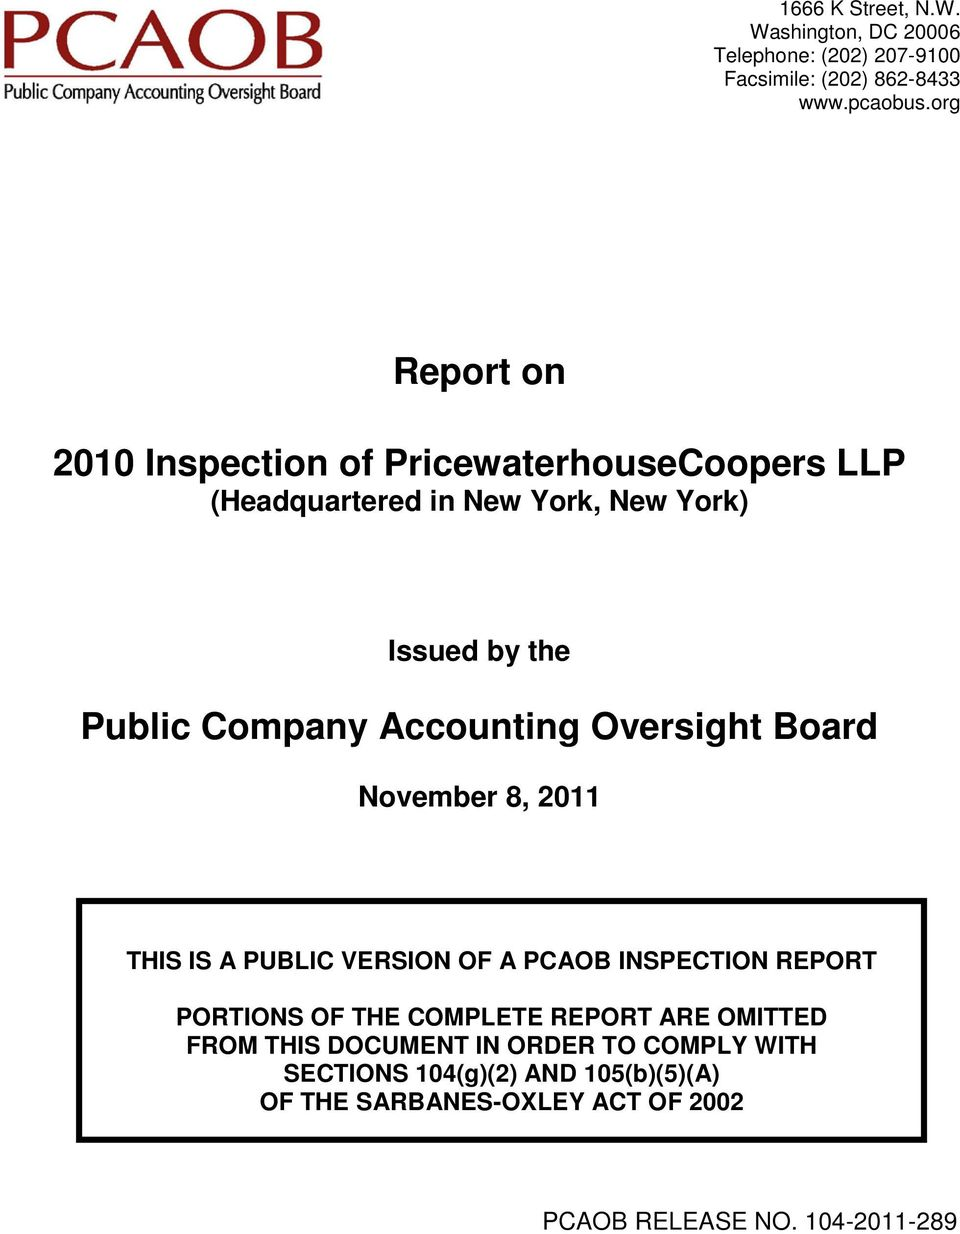 THIS IS A PUBLIC VERSION OF A PCAOB INSPECTION REPORT PORTIONS OF THE COMPLETE REPORT ARE OMITTED FROM THIS